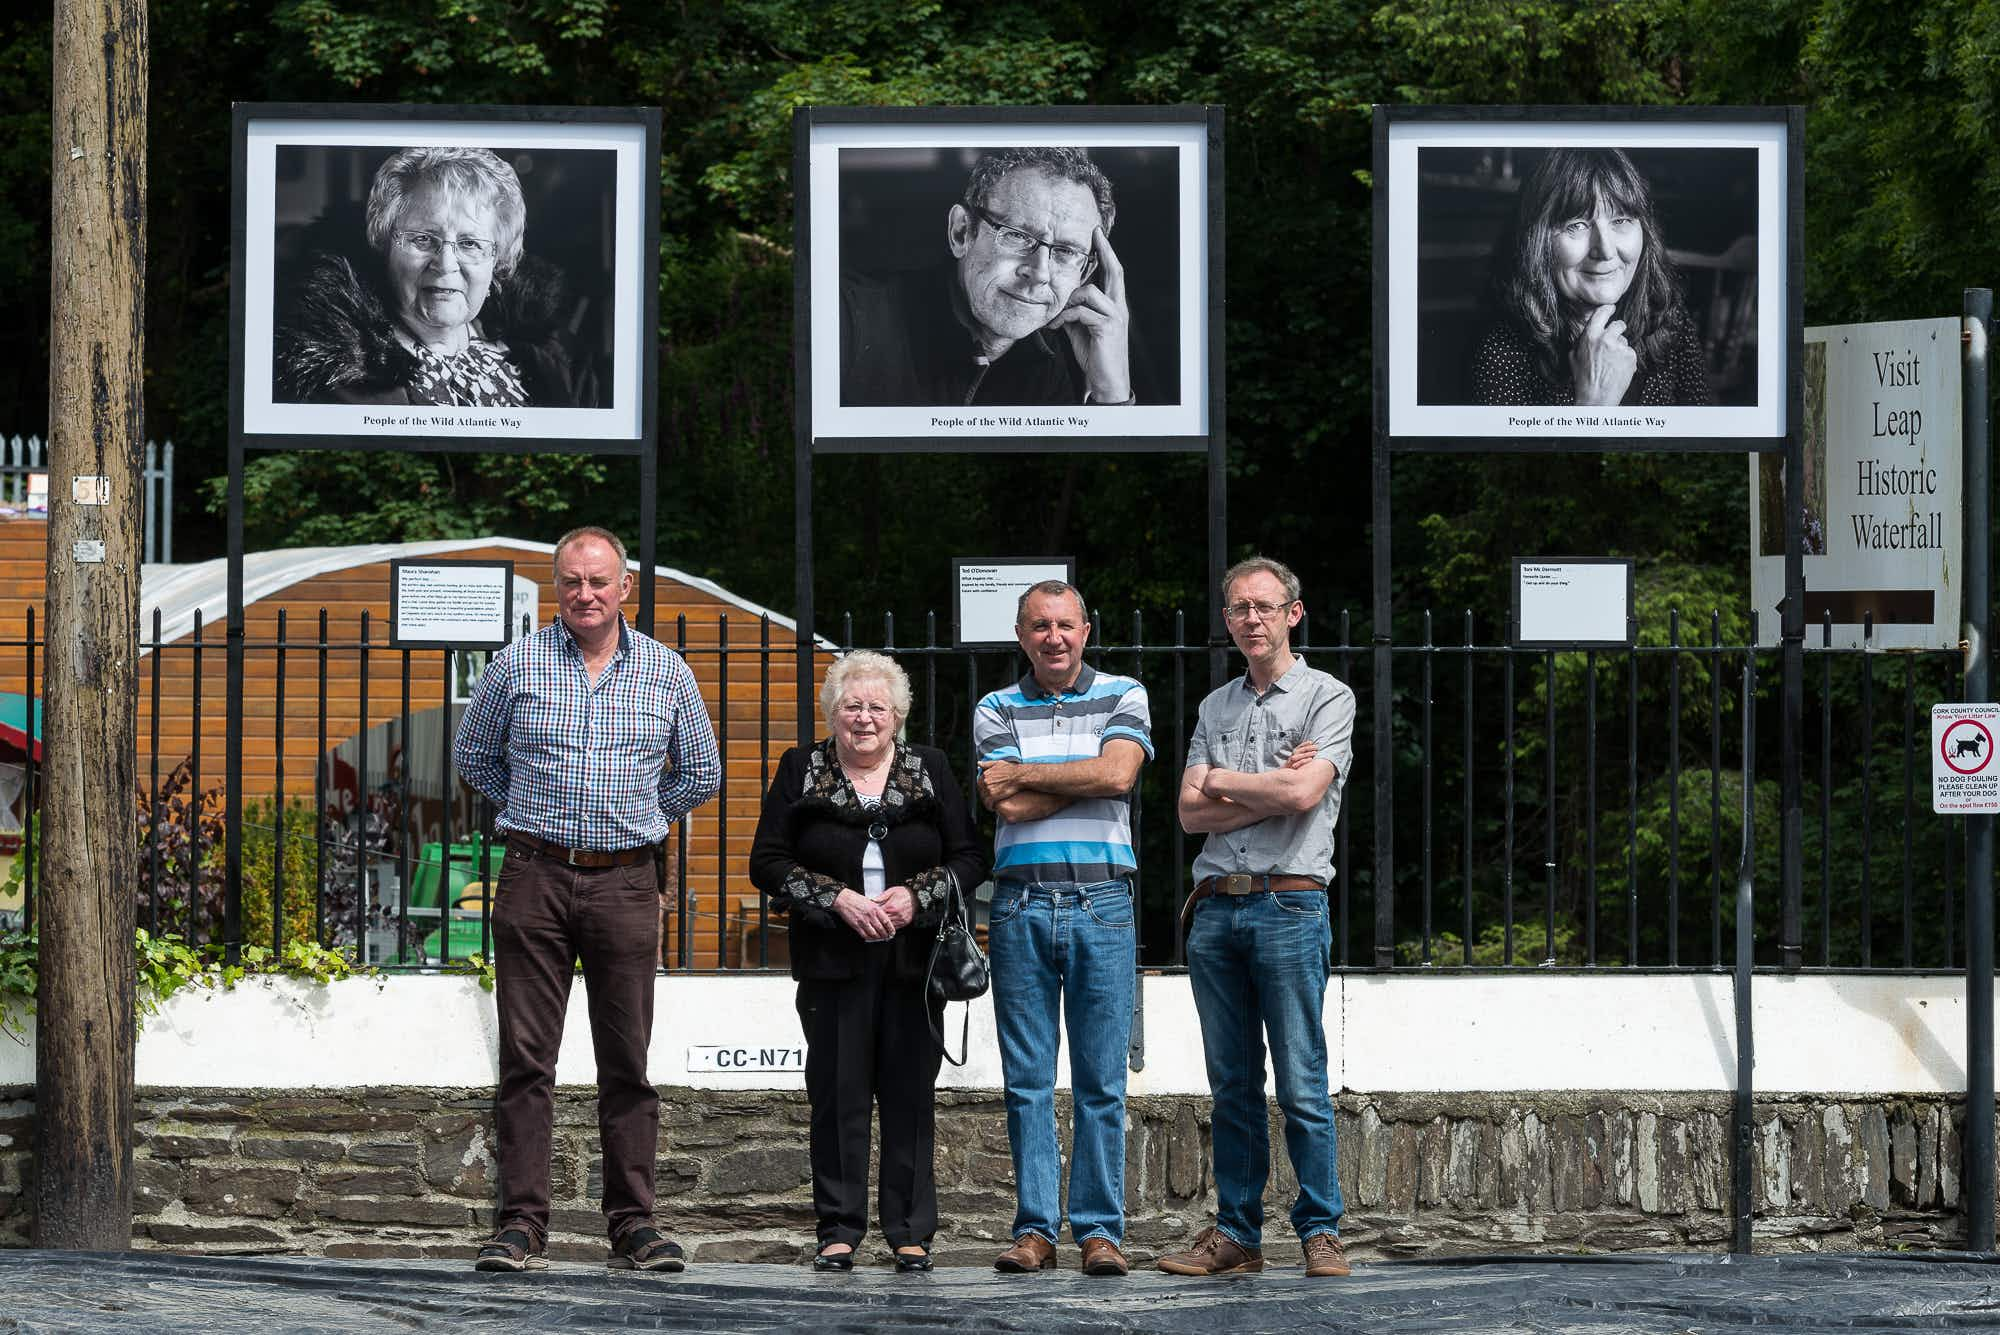 An art project has captured the faces of Ireland's Wild Atlantic Way